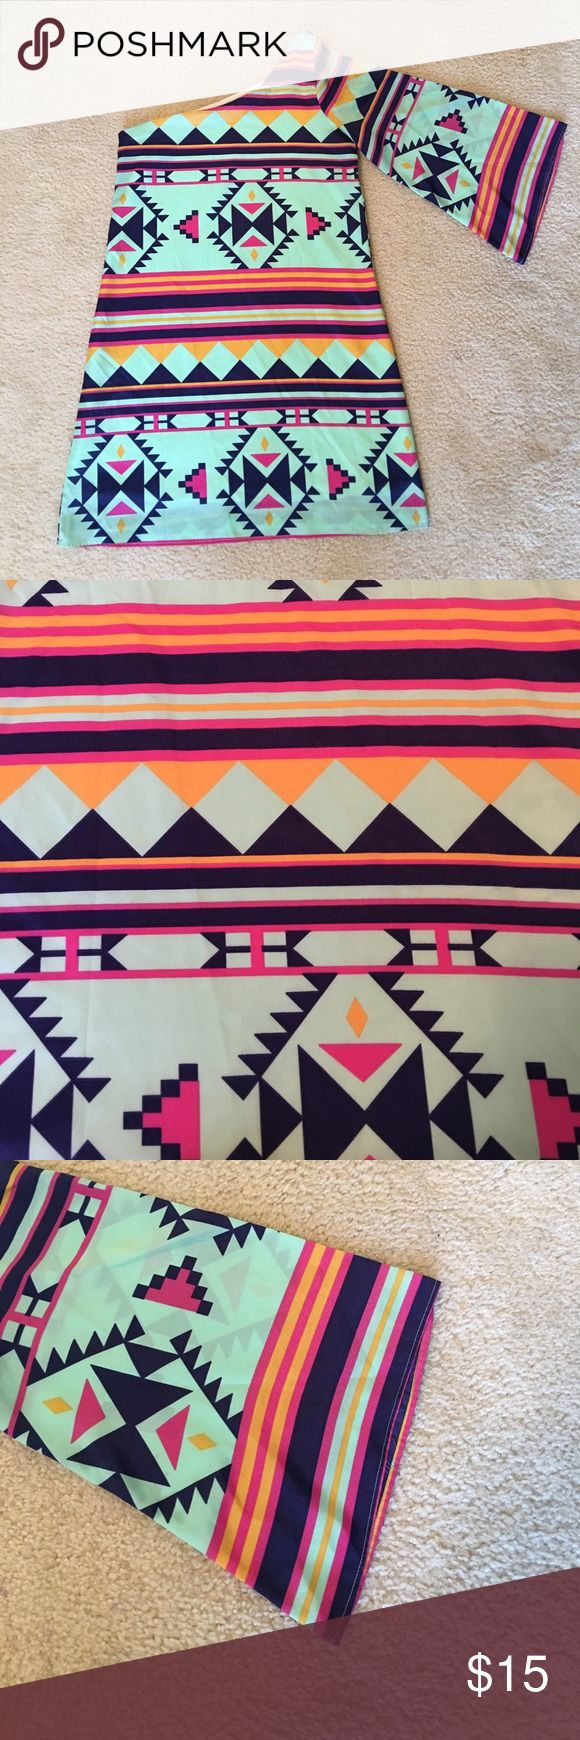 "Bright fun one shoulder Aztec print dress 33"" long. Sleeve has flare. Bright pretty colors and pattern! Perfect for summer. Measures 17"" pit to pit. always Dresses Mini"